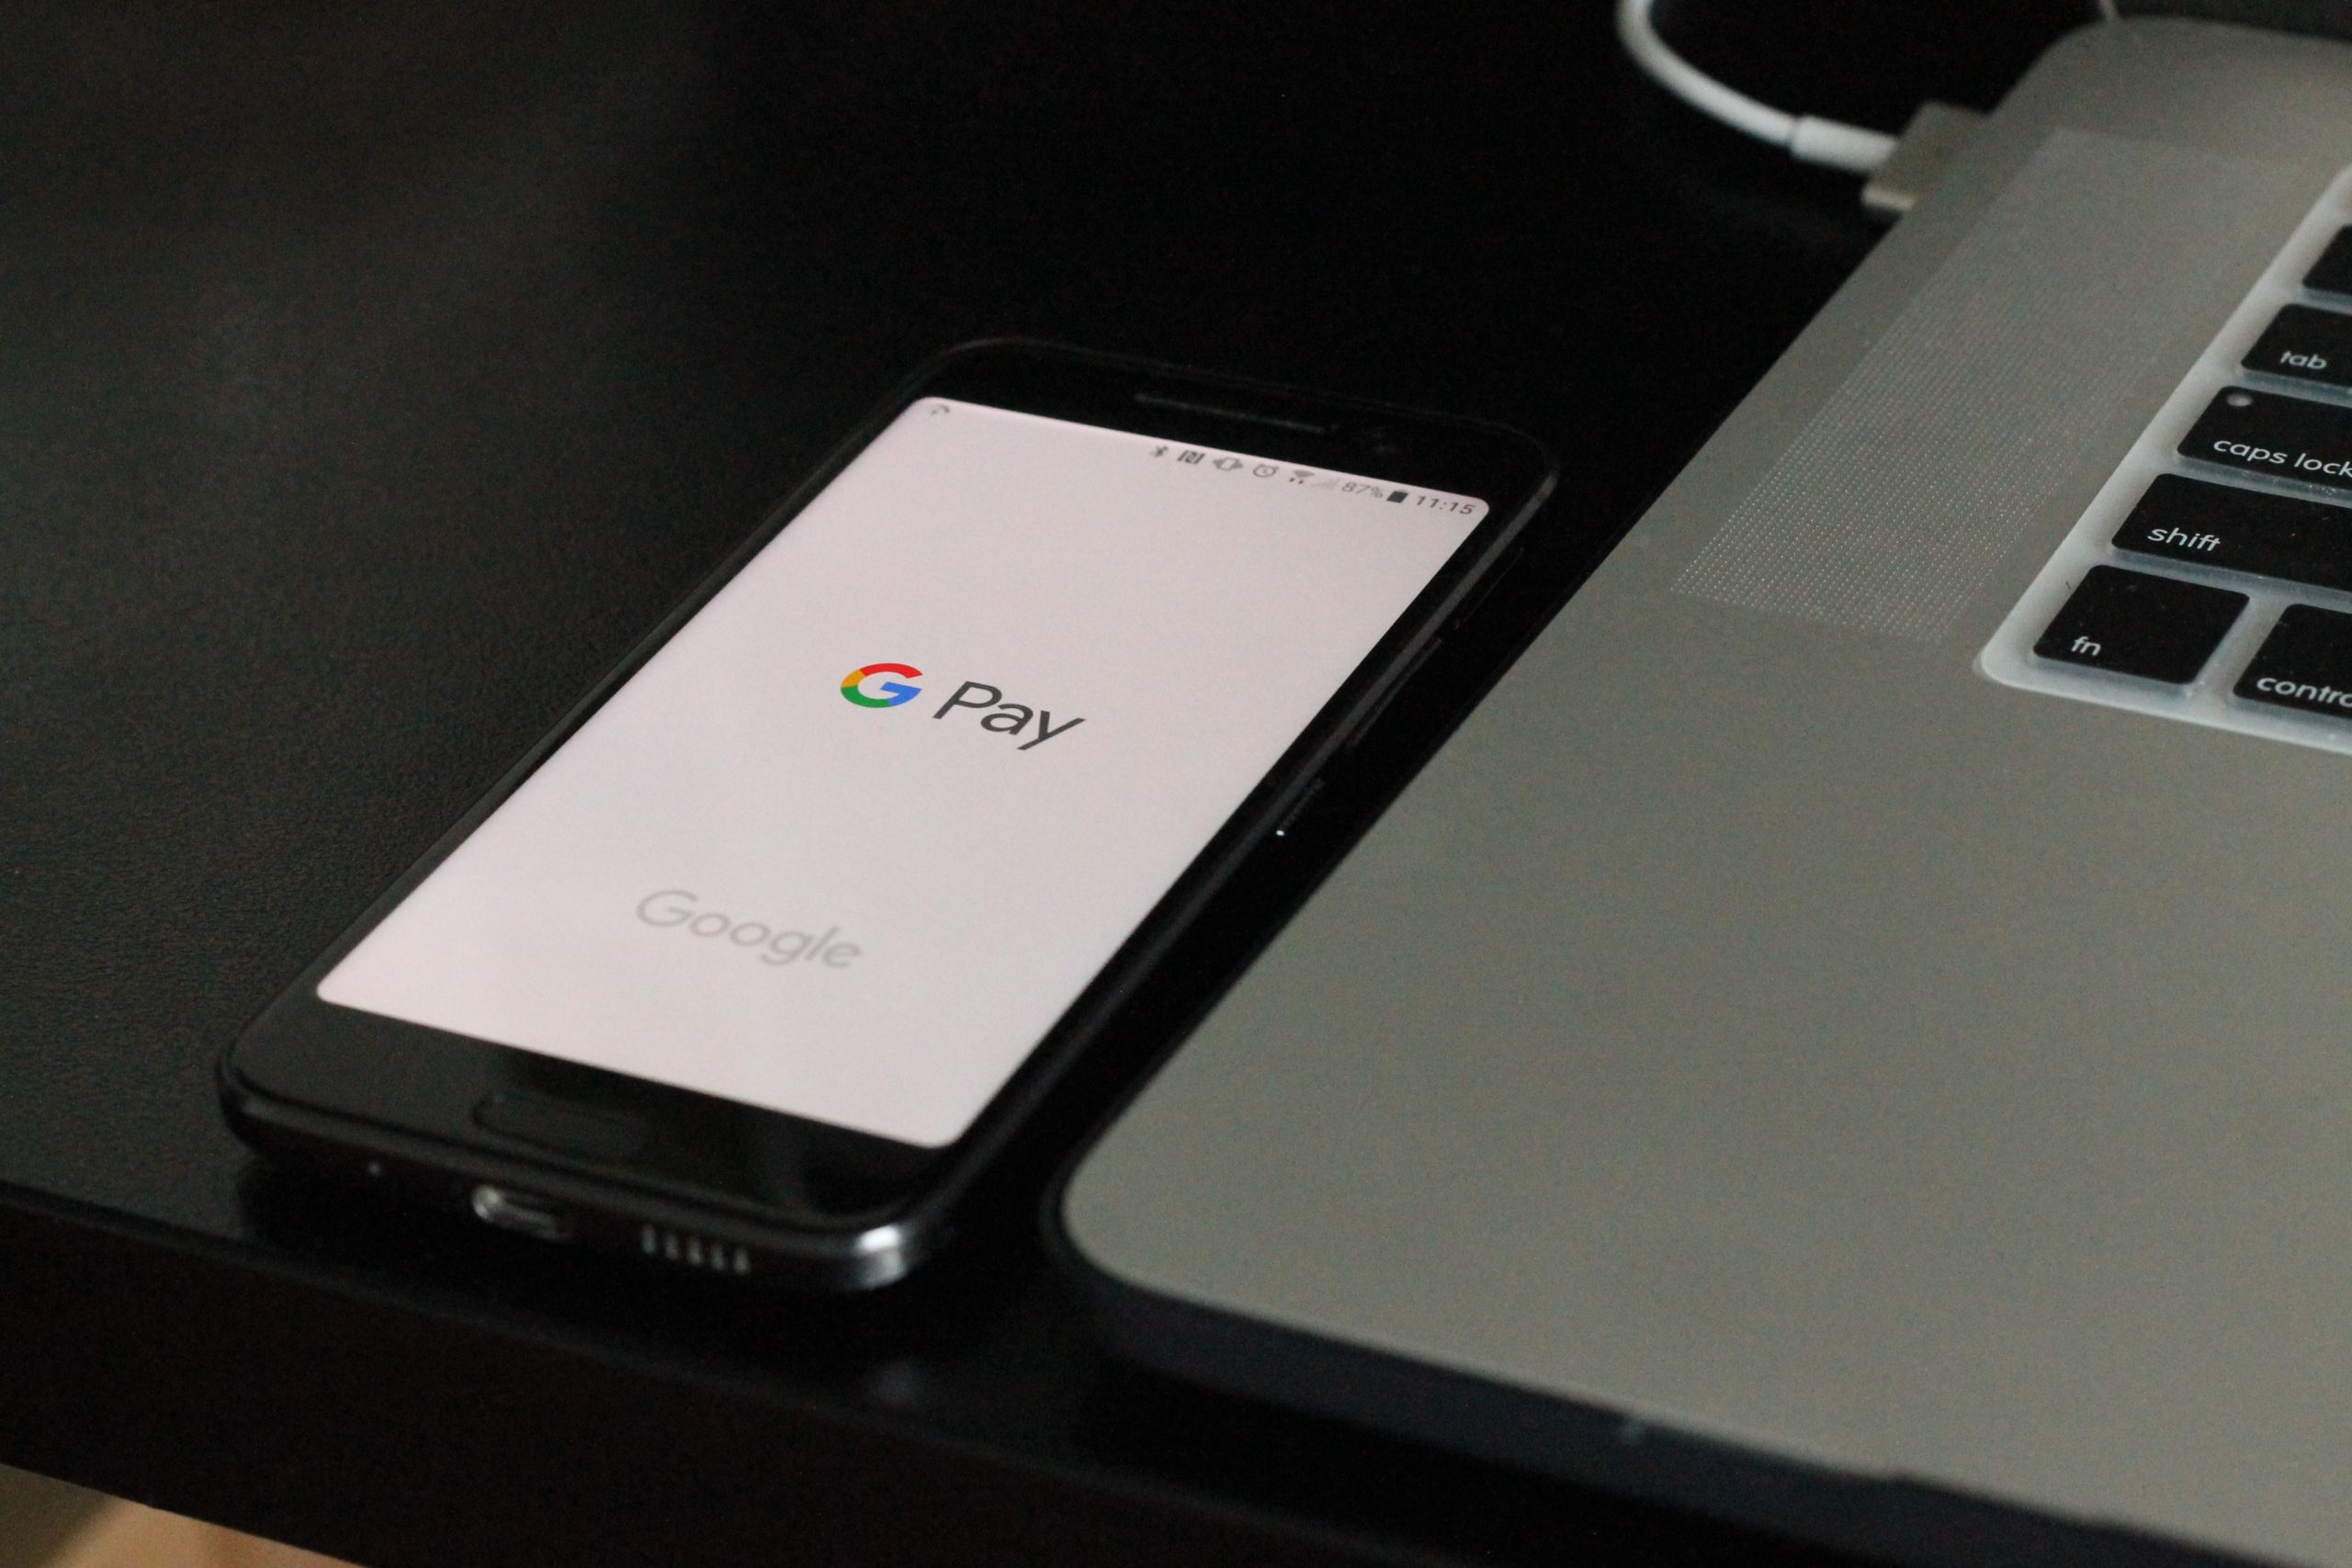 using Google pay